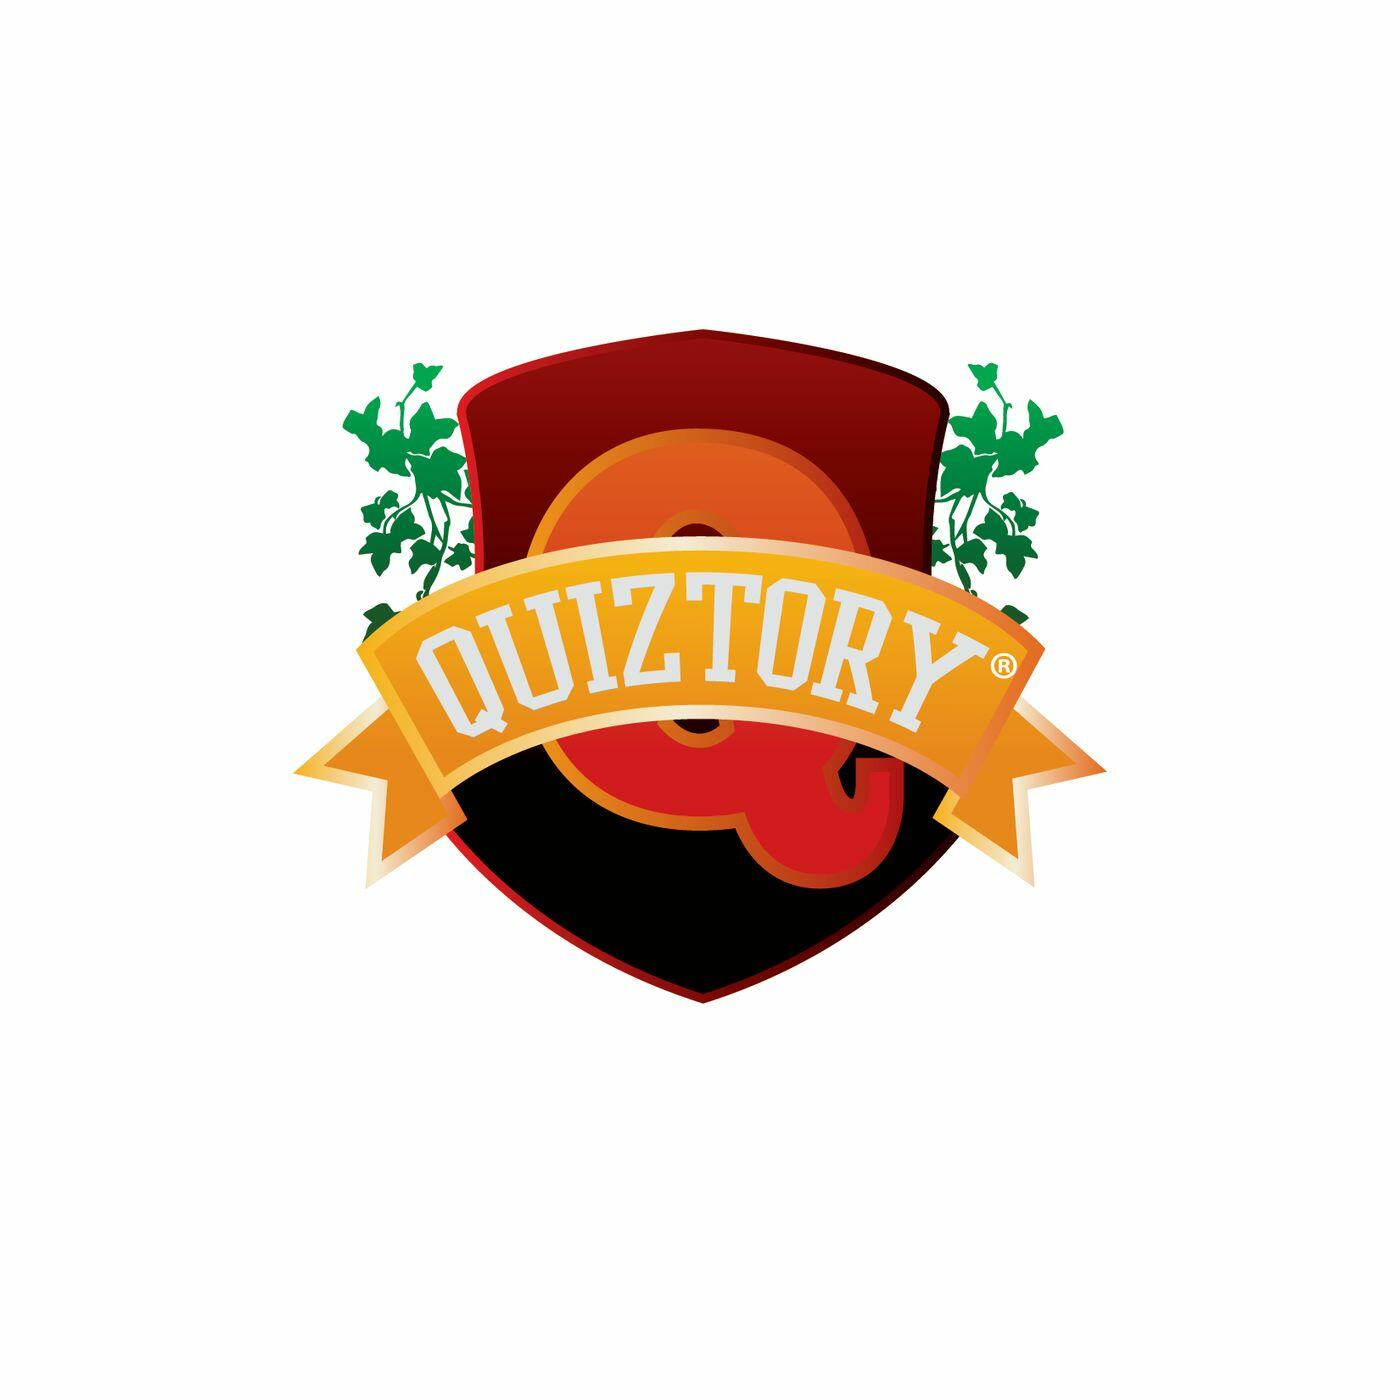 Listen to the This Day in Quiztory Episode - 10.07_Poet Amiri Baraka on iHeartRadio | iHeartRadio